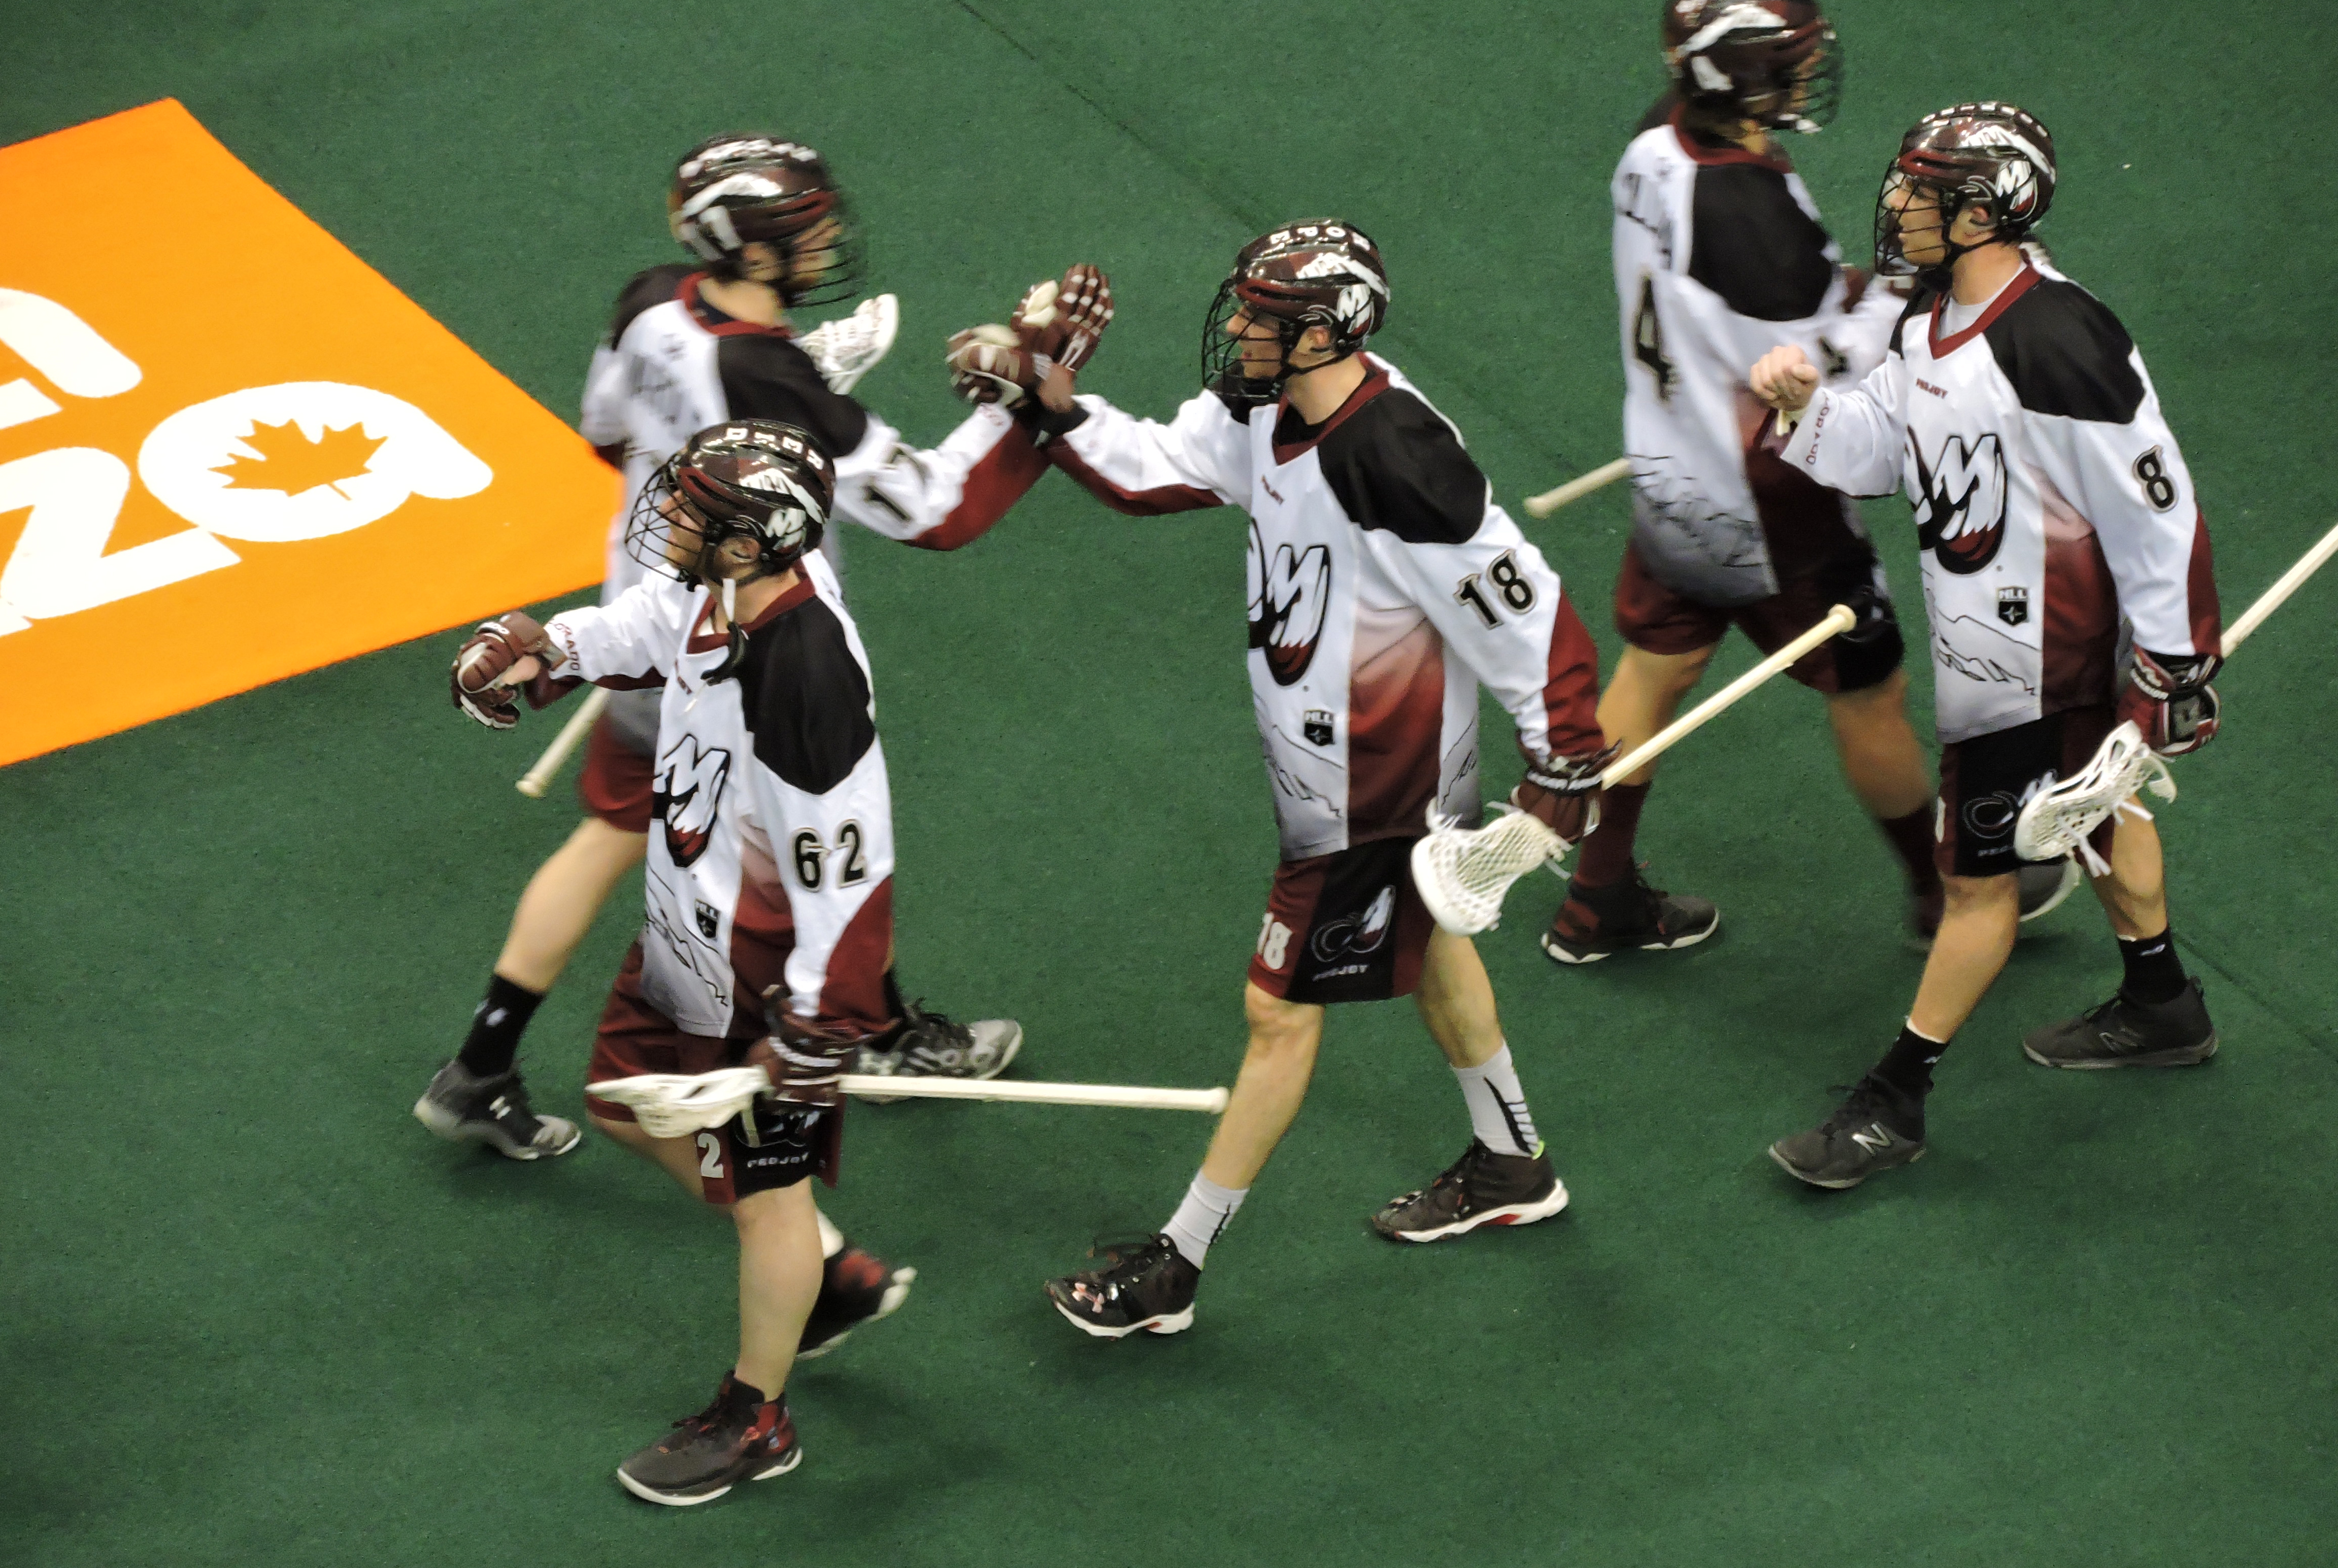 Defensemen Robert Hope (18) celebrates a 14-11 win over the Toronto Rock with his Colorado Mammoth teammates at the Air Canada Centre on March 17, 2017. (Photo credit: Anna Taylor)